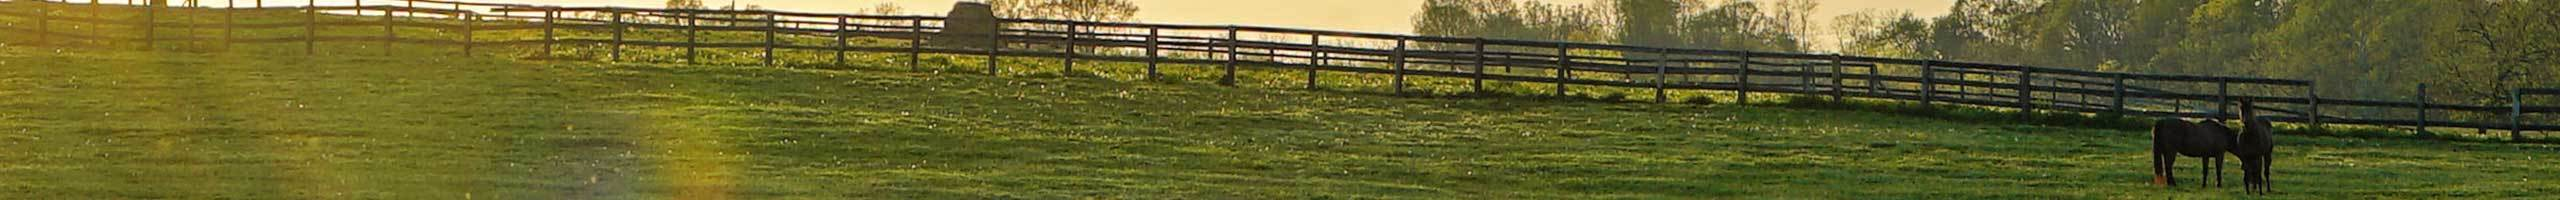 farm ranch fences